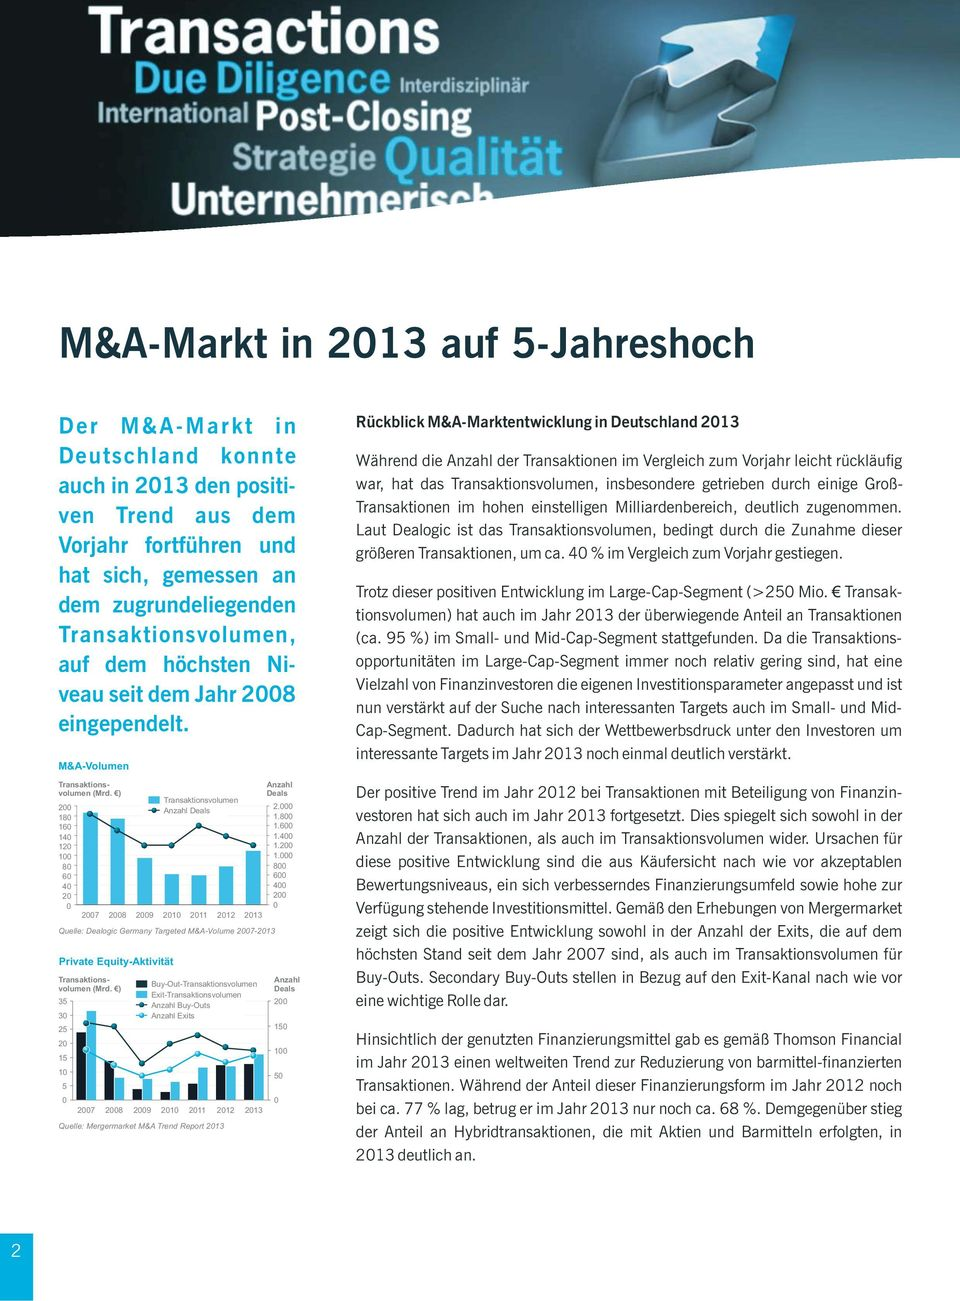 600 1.400 1.200 1.000 800 600 400 200 0 2007 2008 2009 2010 2011 2012 2013 Quelle: Dealogic Germany Targeted M&A-Volume 2007-2013 Private Equity-Aktivität Transaktionsvolumen (Mrd.